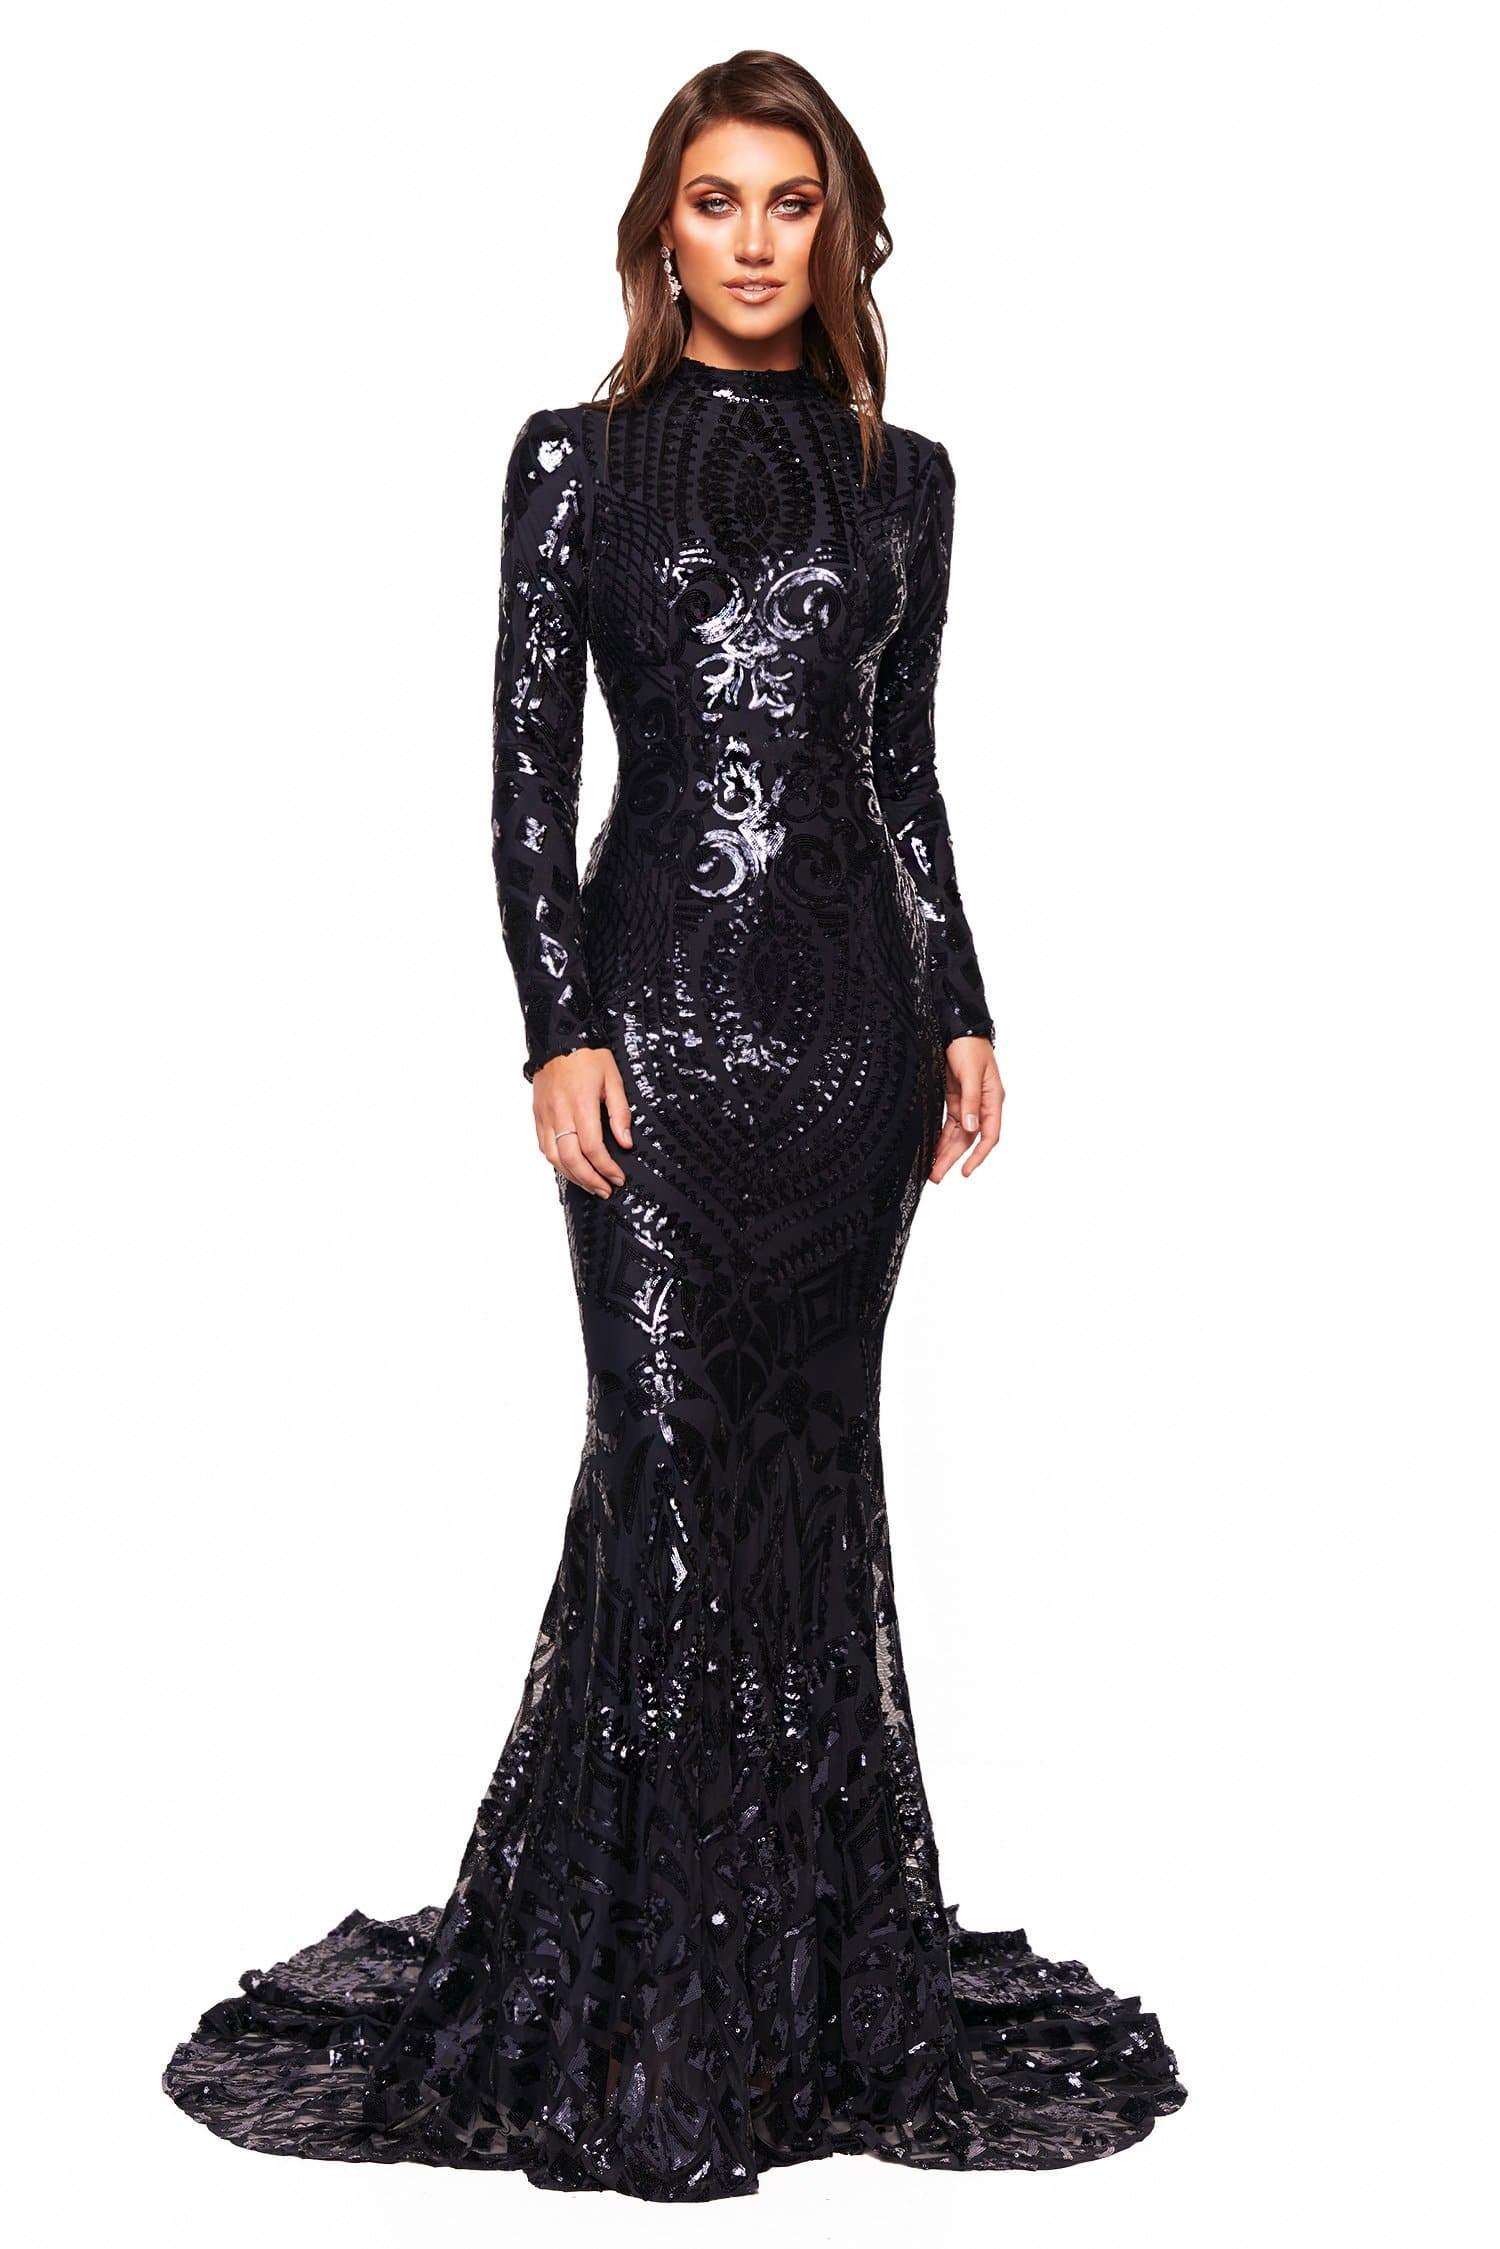 6913008ef8070c A&N Luxe Cosimia - Navy Long Sleeve Sequin Gown with High Neck – A&N ...